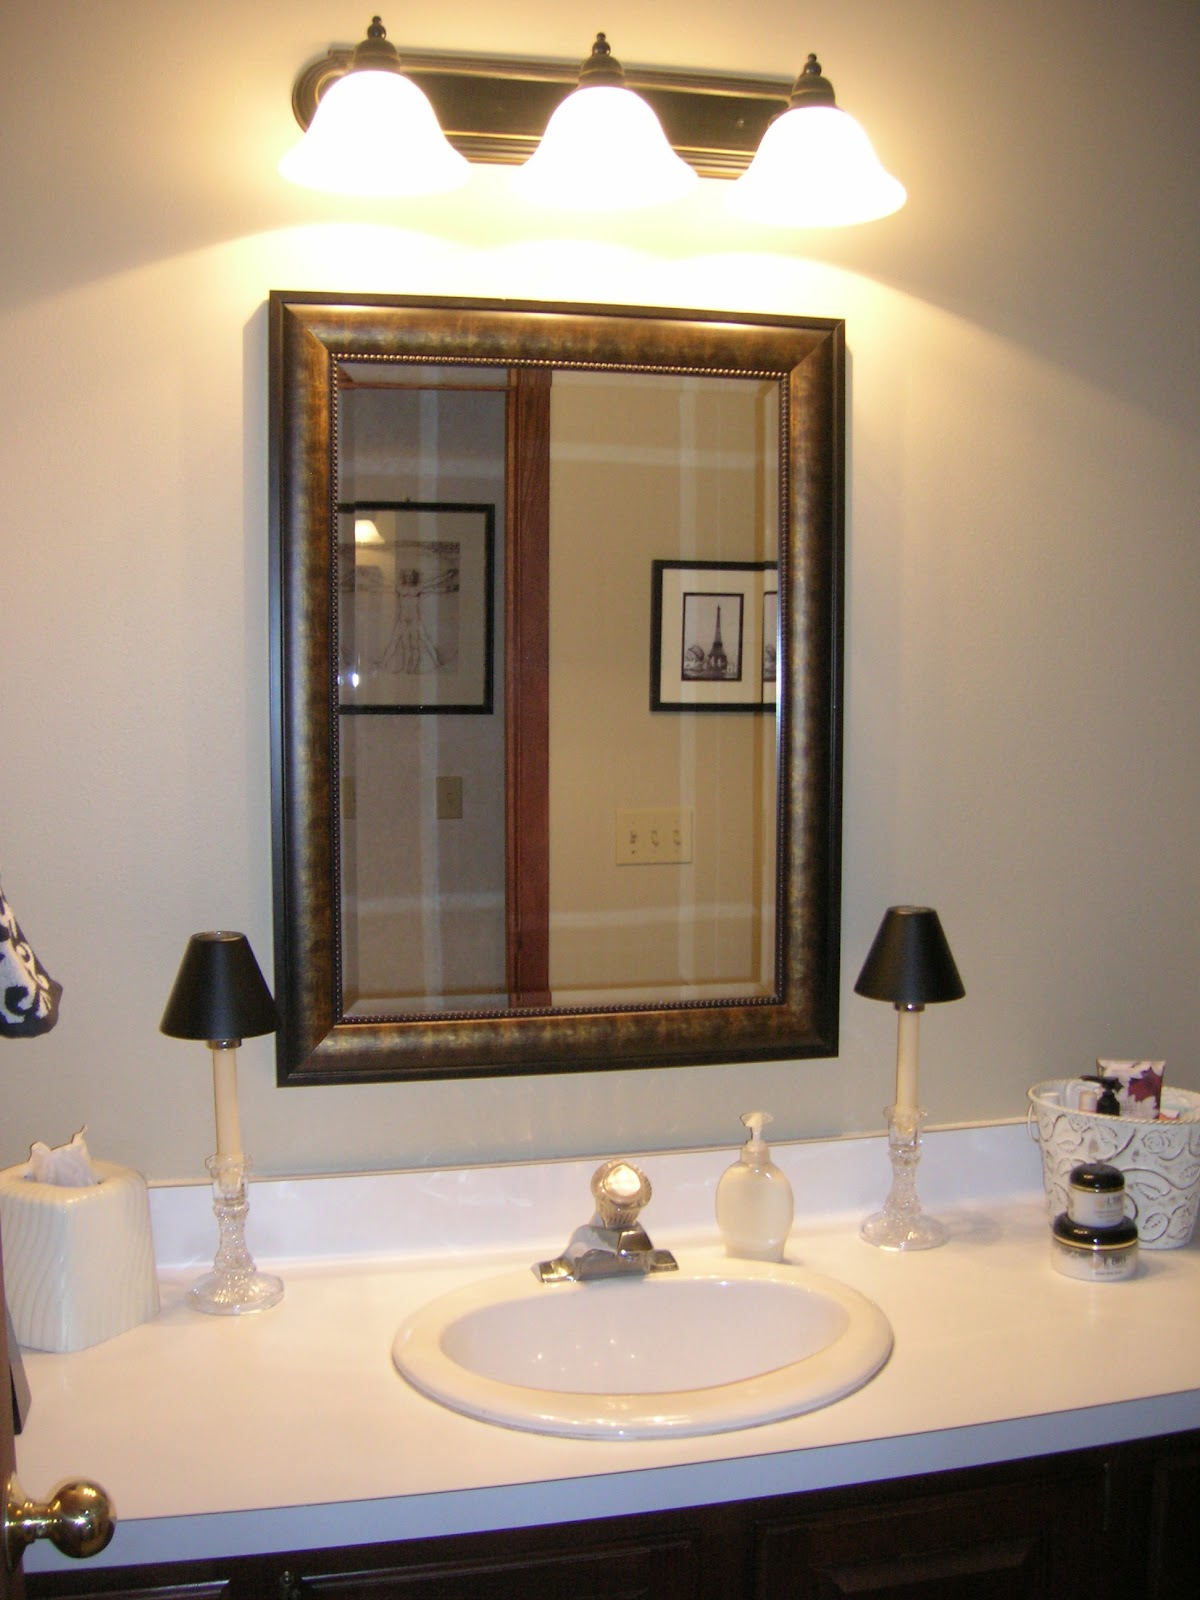 Maison newton bathroom finished - Bathroom wall lights for mirrors ...